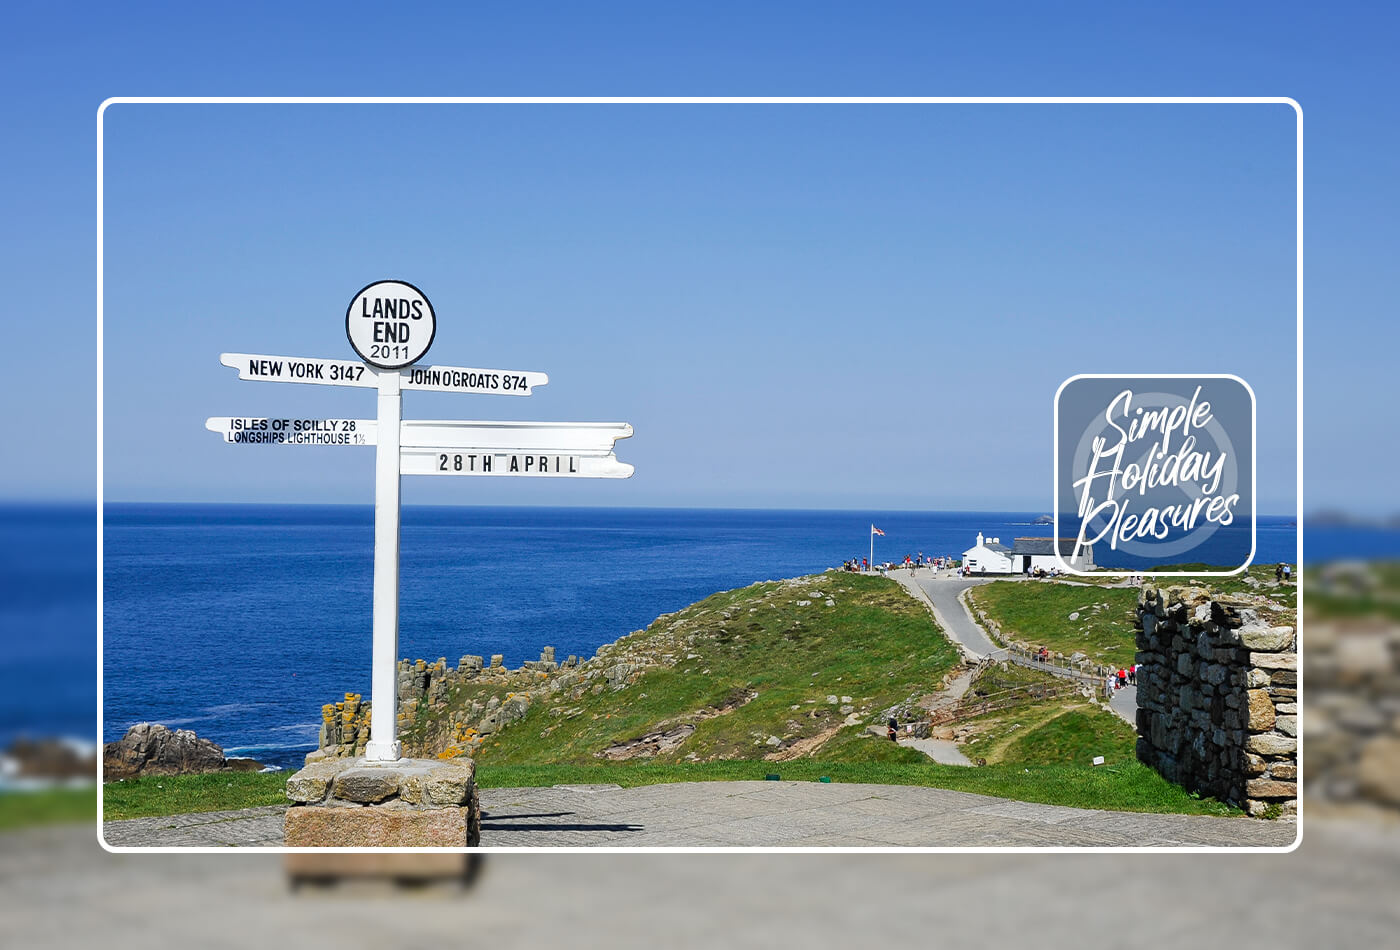 coastal walks - lands end - voted 1